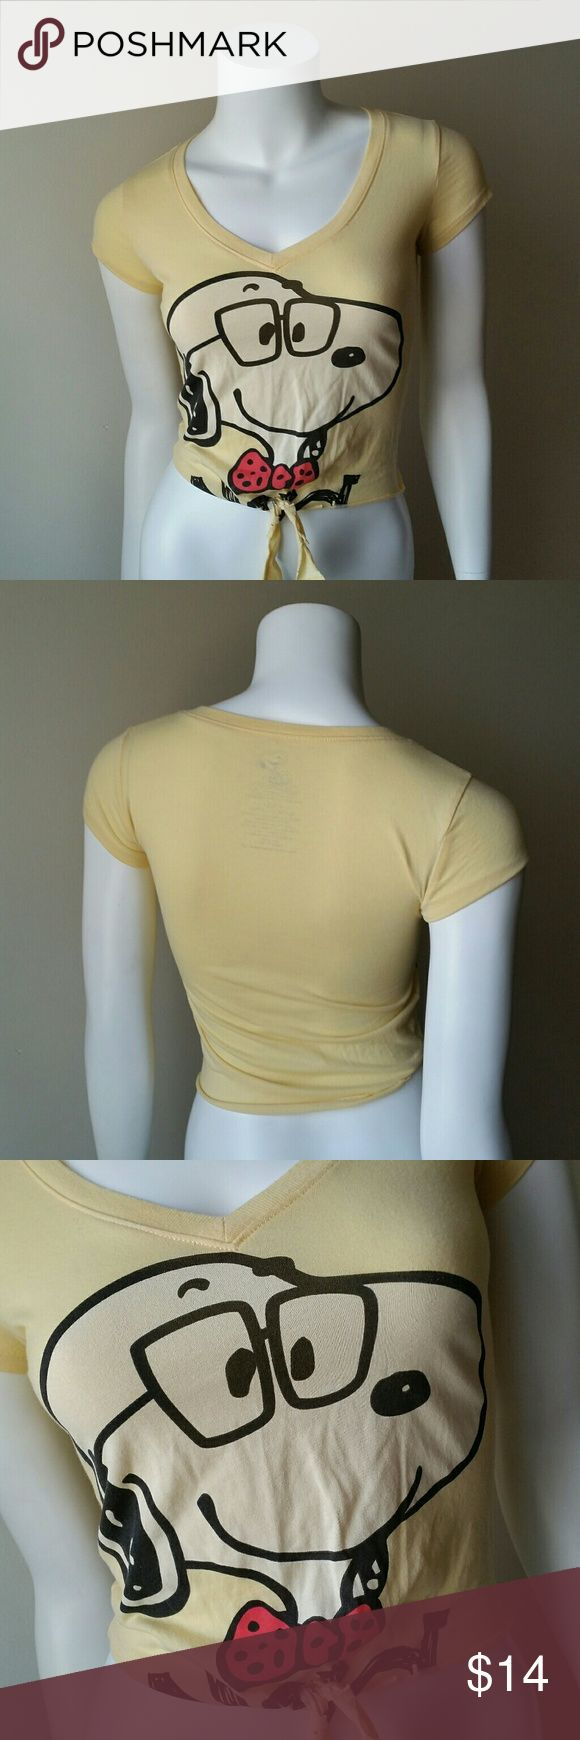 """PEANUTS SNOOPY V-NECK TIE WAIST YELLOW T-SHIRT Peanuts brand, Snoopy, light yellow, v-neck tie waist t-shirt. 60% cotton. 40% polyester. 16"""" flat across from armpit to armpit. 18"""" length. Peanuts Tops Tees - Short Sleeve"""